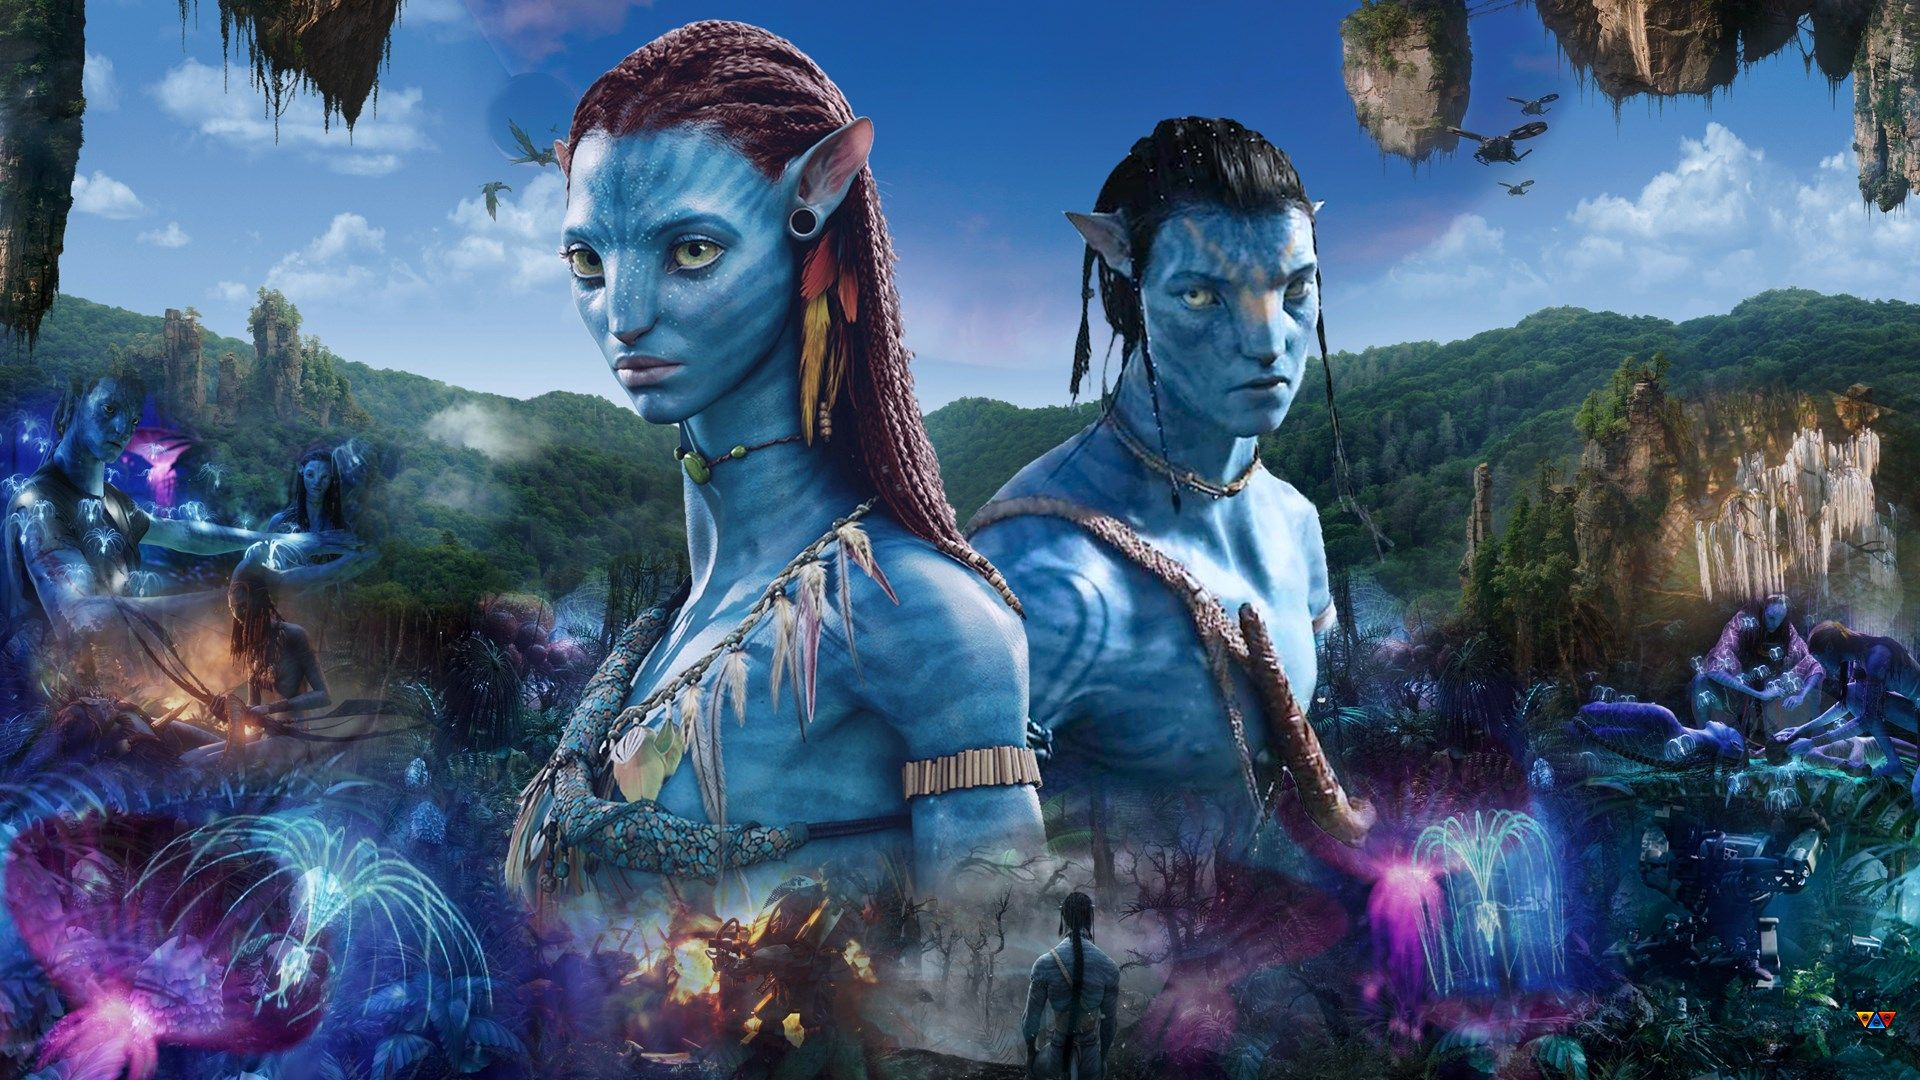 Amazing Wallpaper Movie Avatar 2 - 914d7c336ae13e6f185dc45f668f6ba9  Collection_28180.jpg